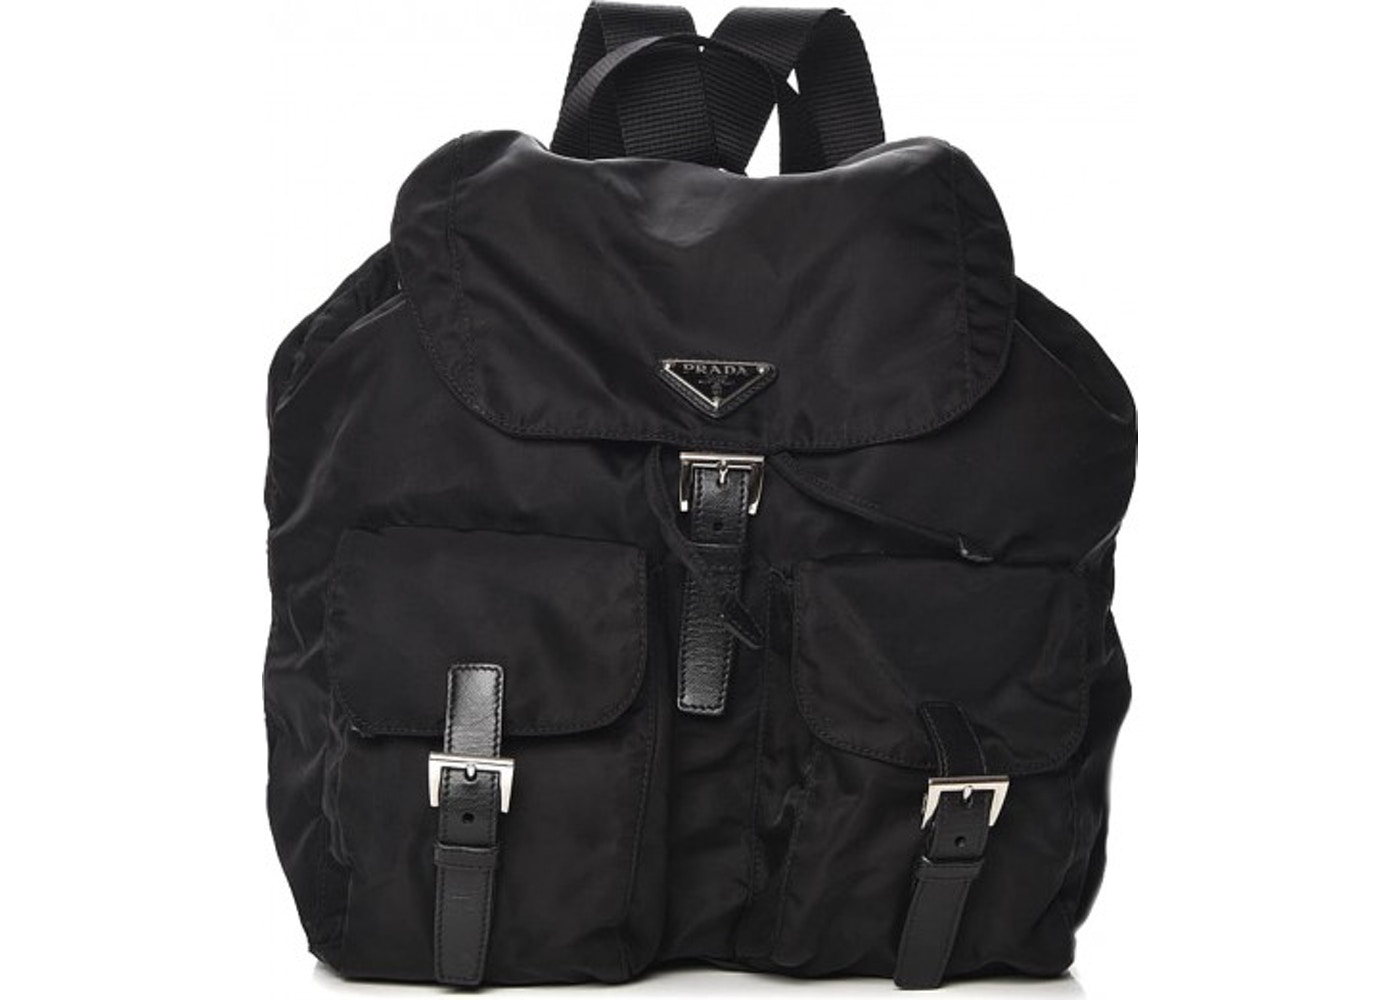 1591e3a1c004 Prada Vela Backpack Nero Black. Nero Black